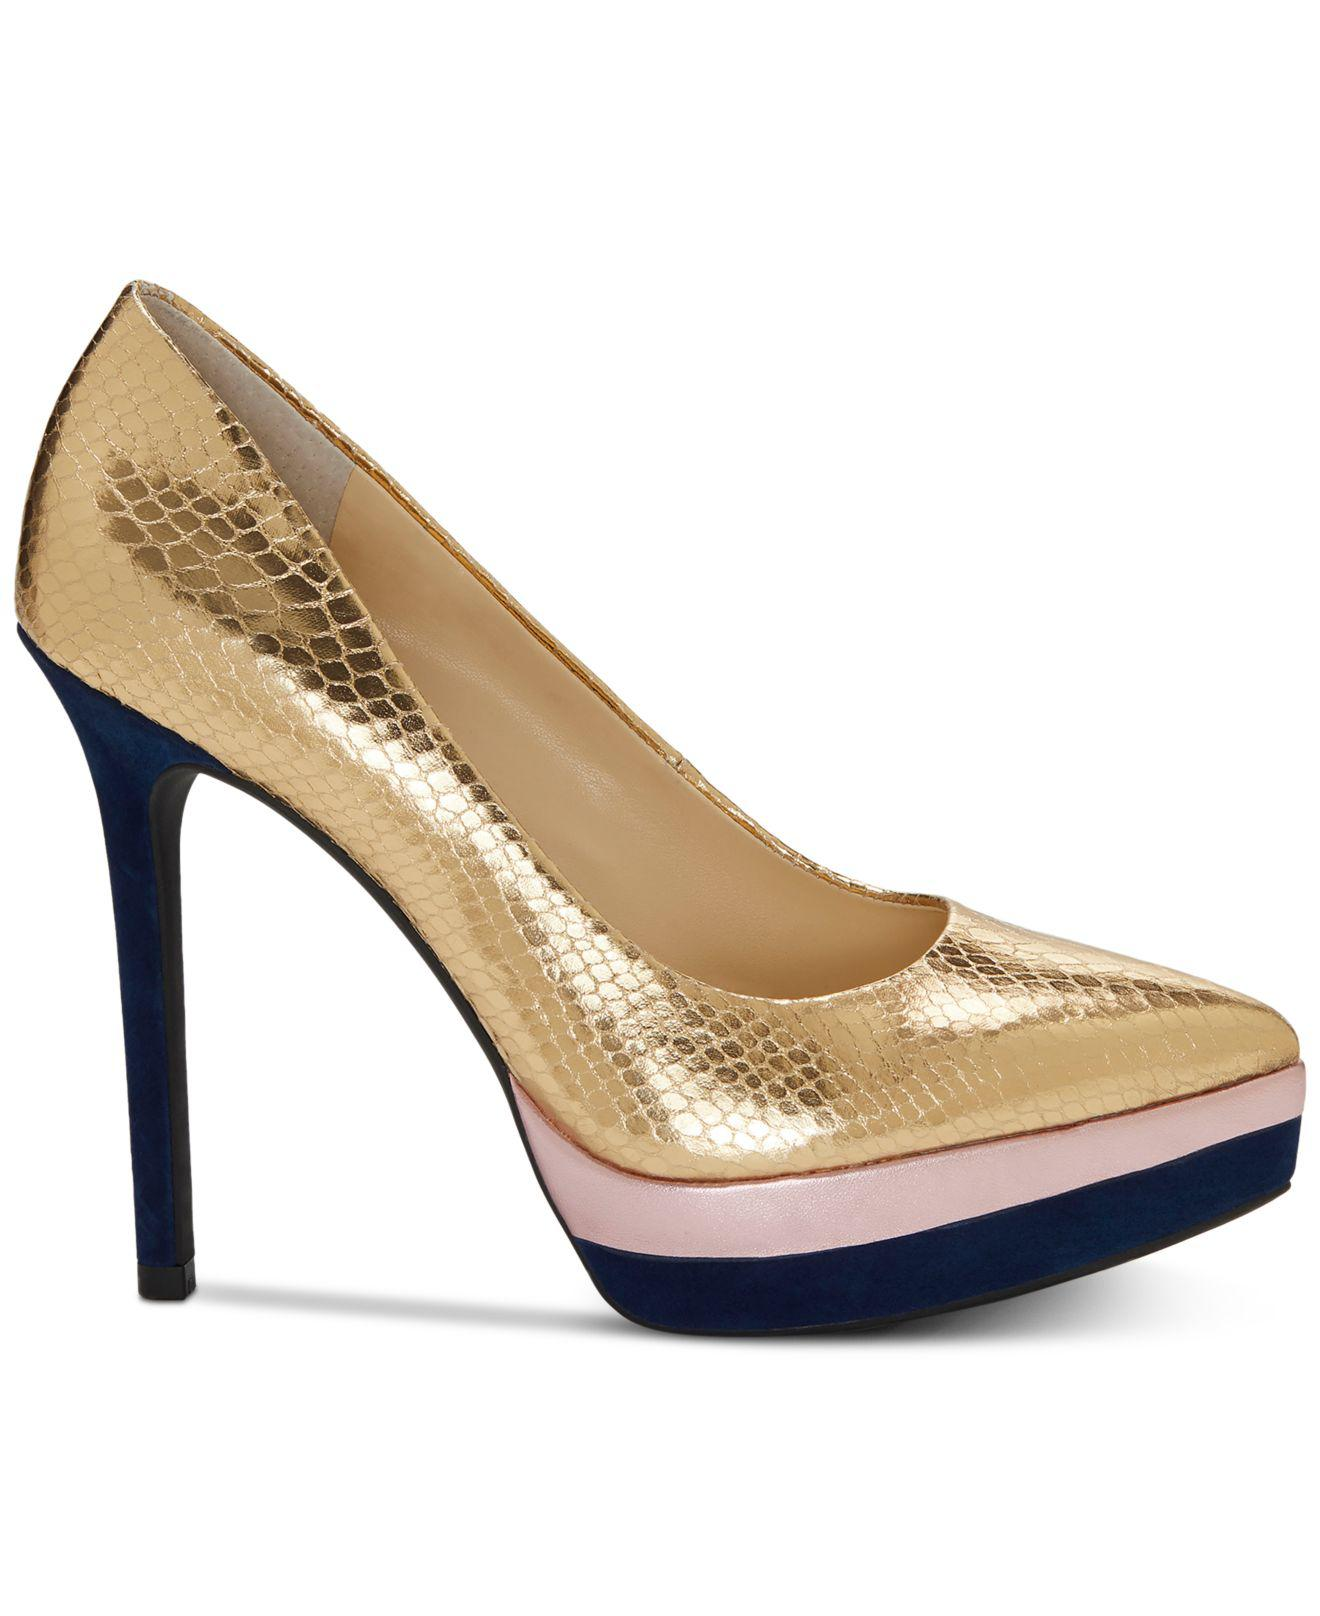 1b78d86d954 Lyst - Jessica Simpson Loyren Pumps in Metallic